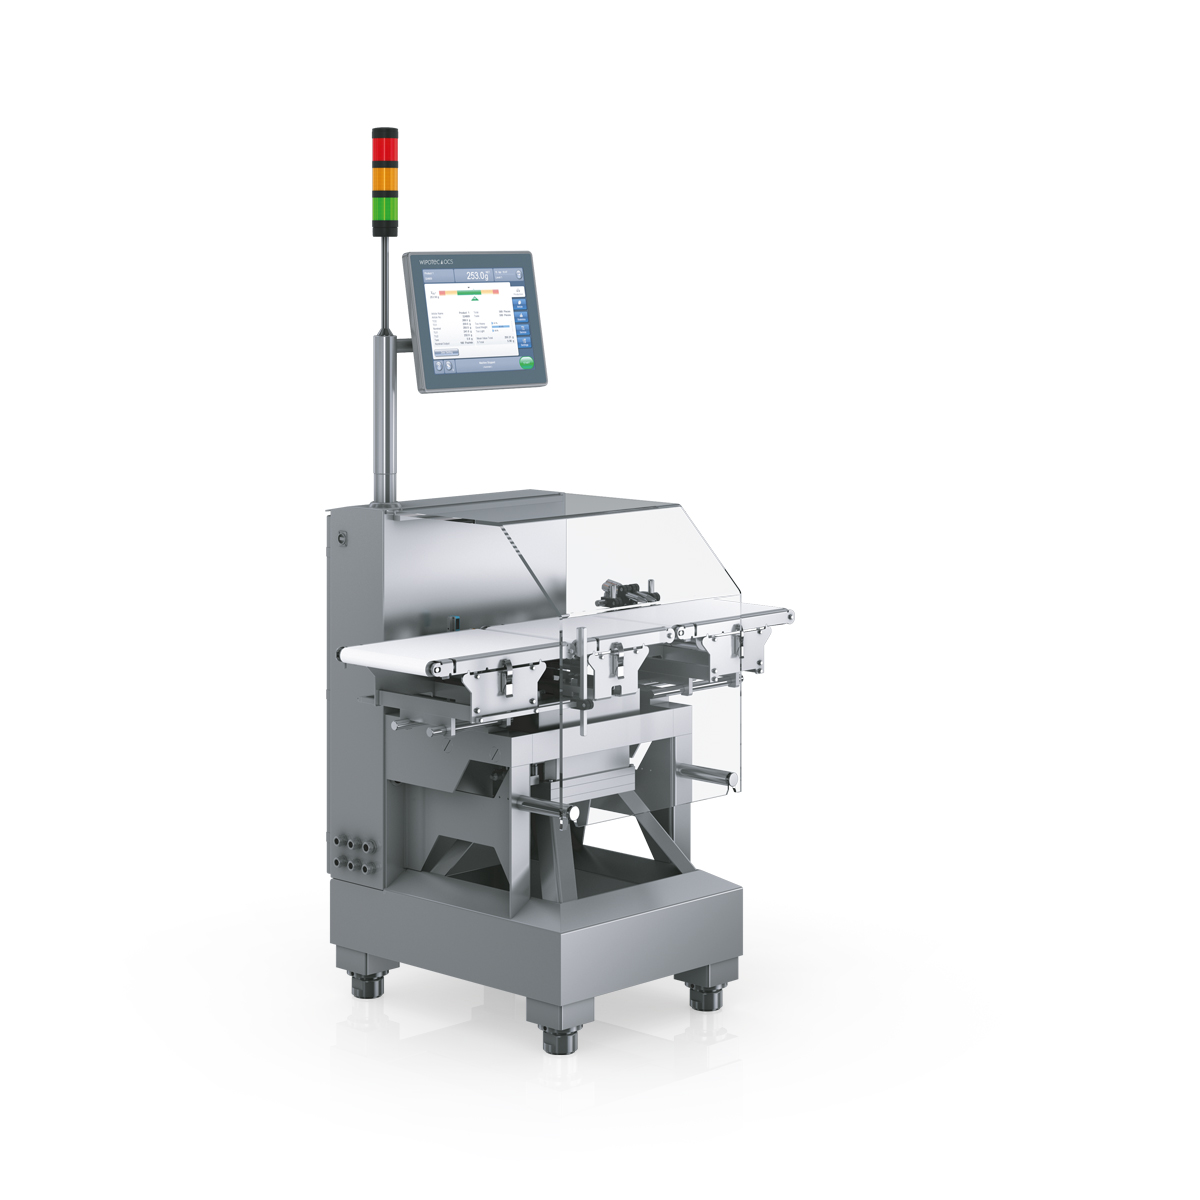 Checkweigher HC-A-VA left view